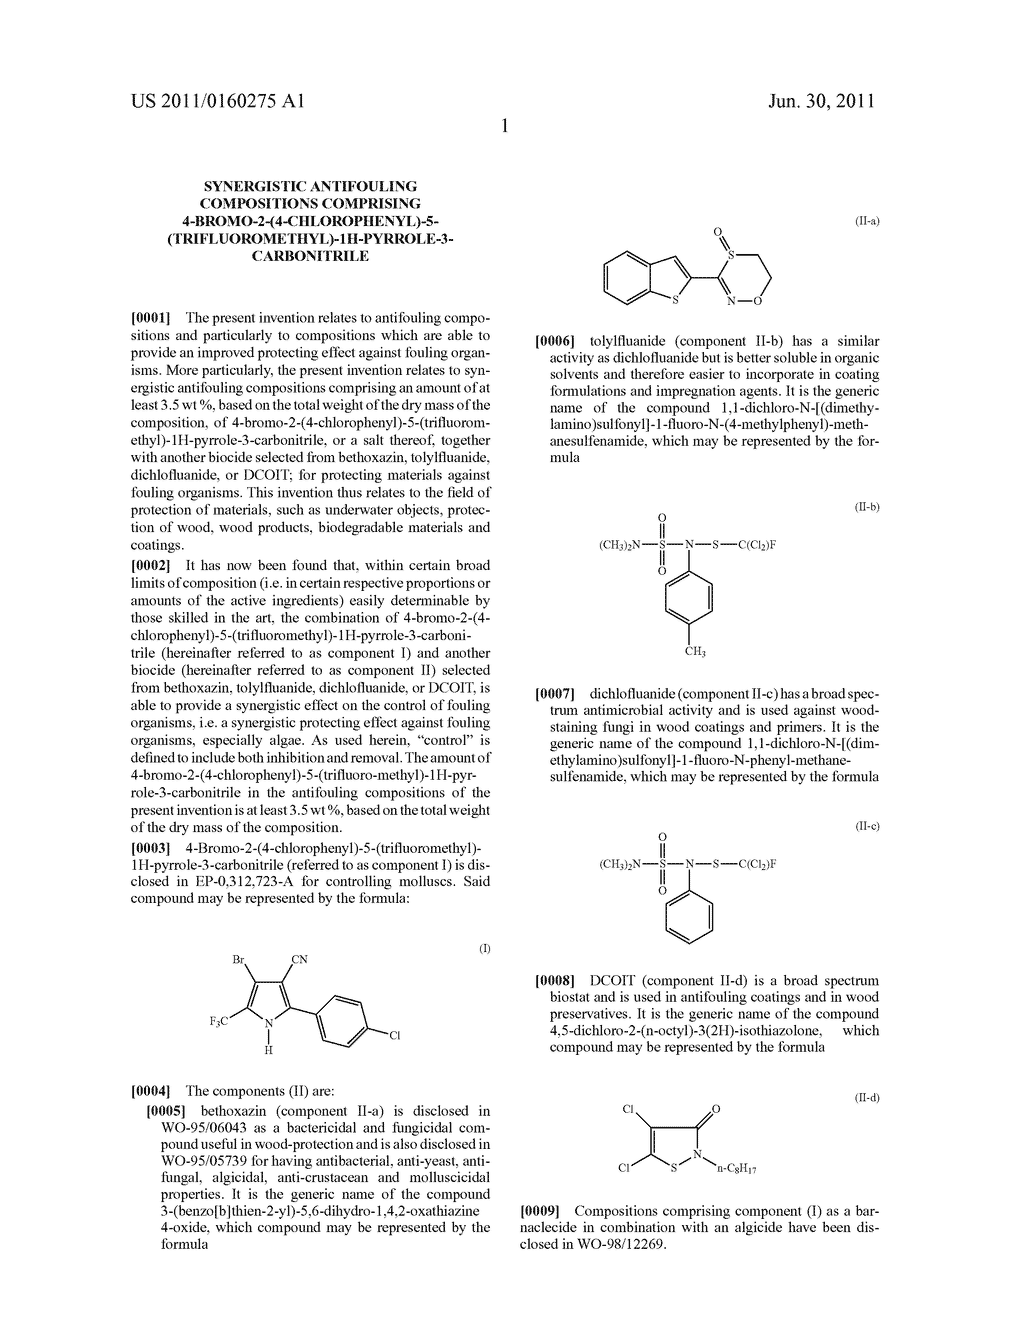 SYNERGISTIC ANTIFOULING COMPOSITIONS COMPRISING     4-BROMO-2-(4-CHLOROPHENYL)-5-(TRIFLUOROMETHYL)-1H-PYRROLE-3-CARBONITRILE - diagram, schematic, and image 02